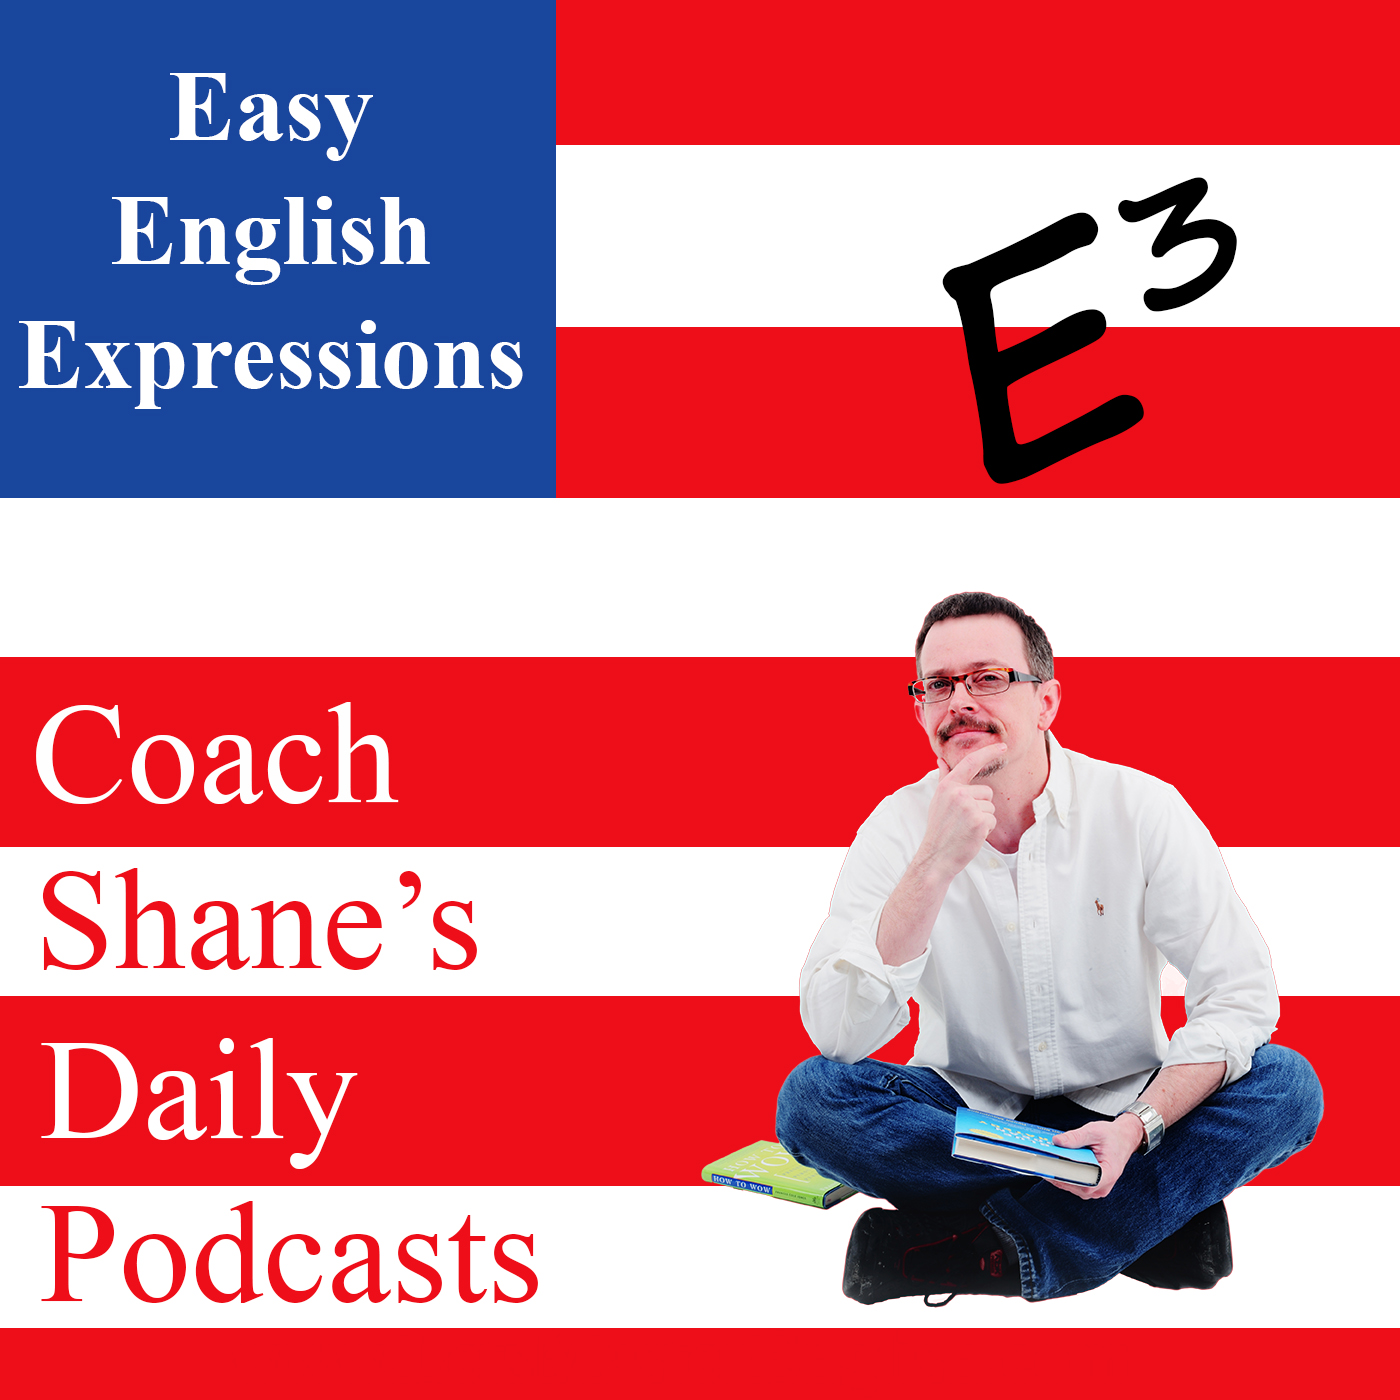 66 Daily Easy English Expression PODCAST—to STRAIGHTEN smo/smt OUT